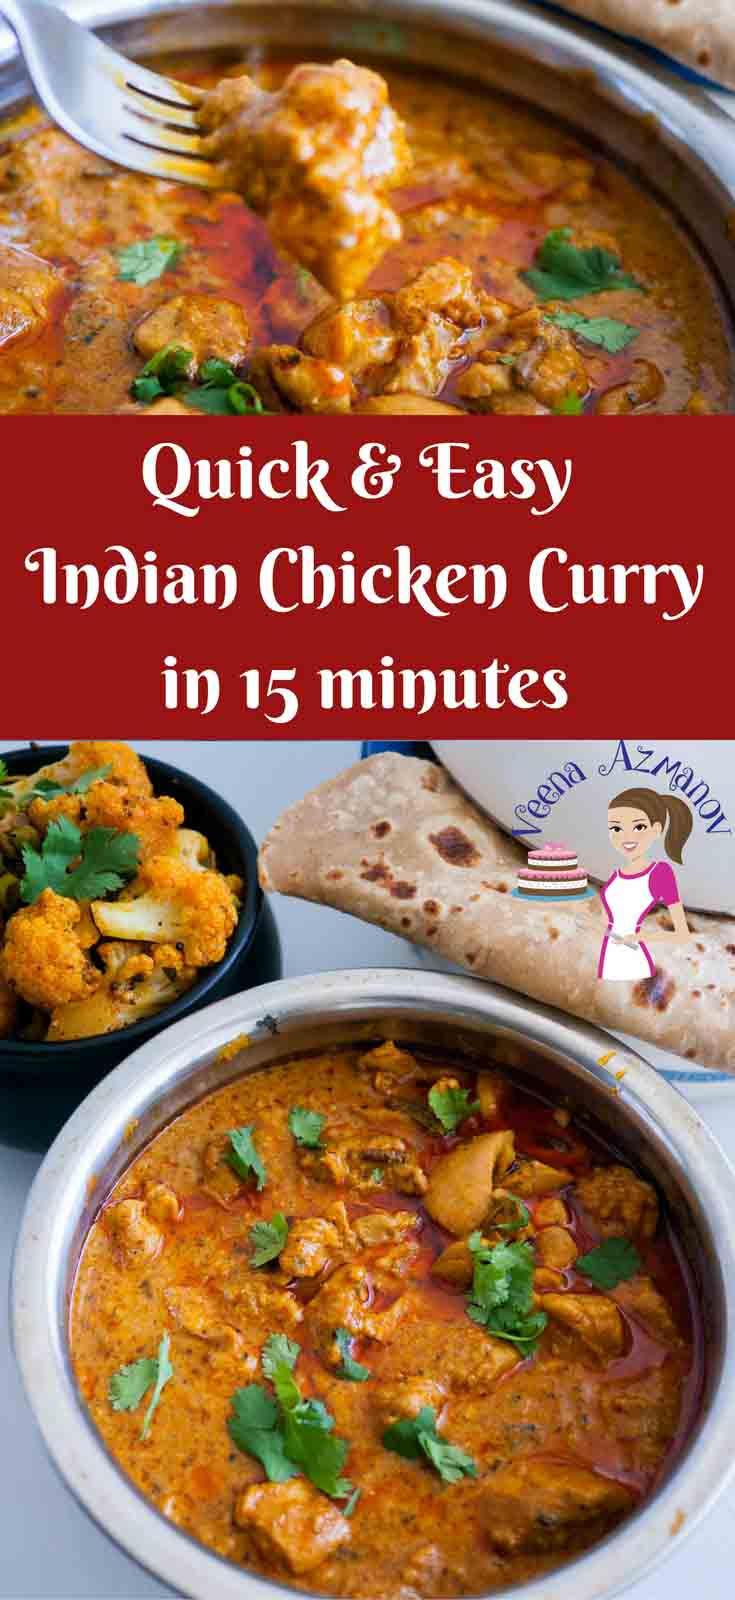 This quick and easy Indian Chicken Curry is a real treat. Made with exotic Indian spices like cumin, coriander and garam masala with added zing from tomato paste and sour cream and the gorgeous color from sweet hot paprika.